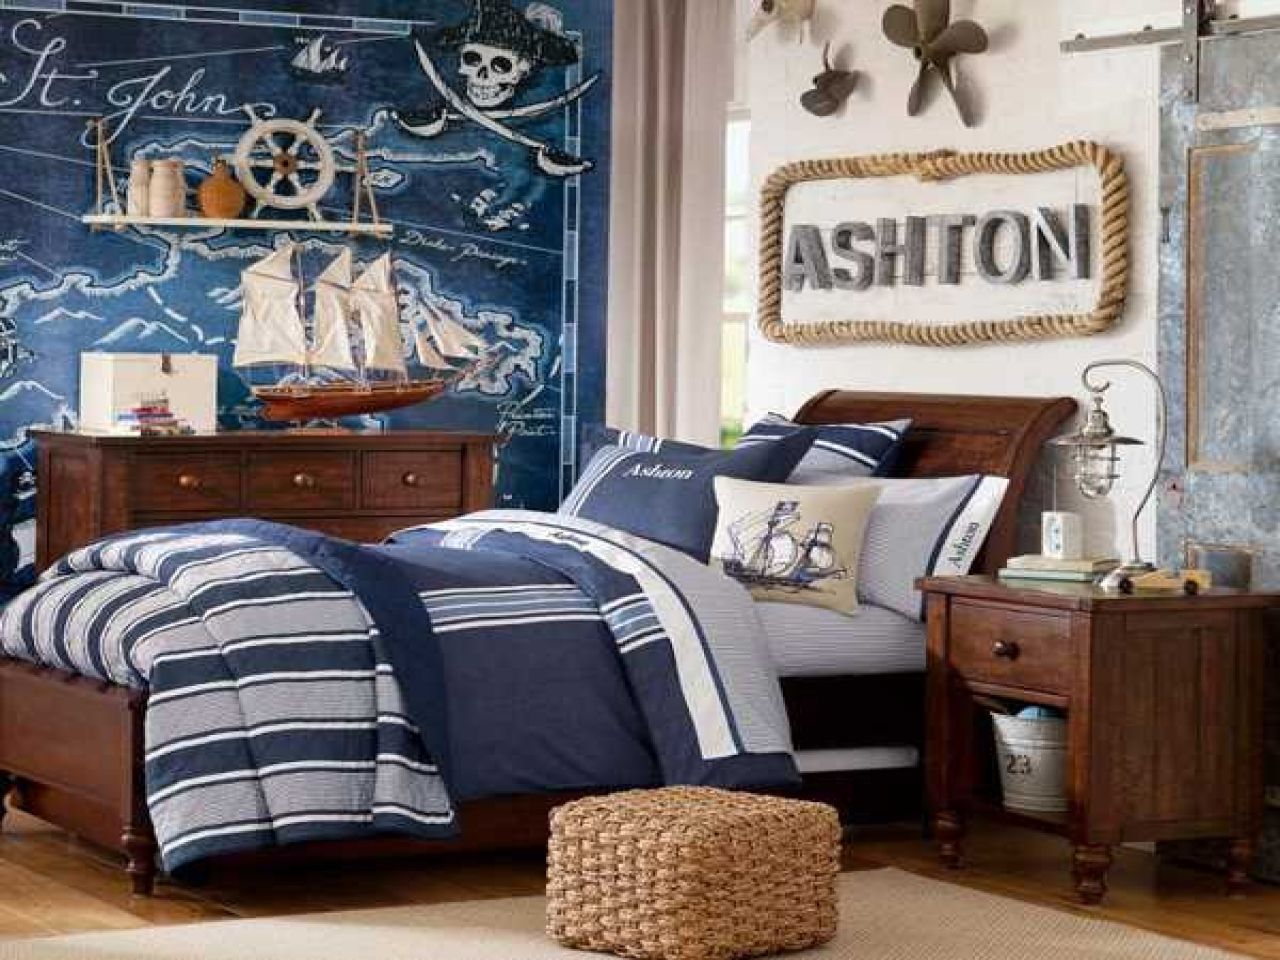 barn boy furniture pottery barn boys room ideas pirate bedroom decornautical - Pottery Barn Bedroom Decorating Ideas